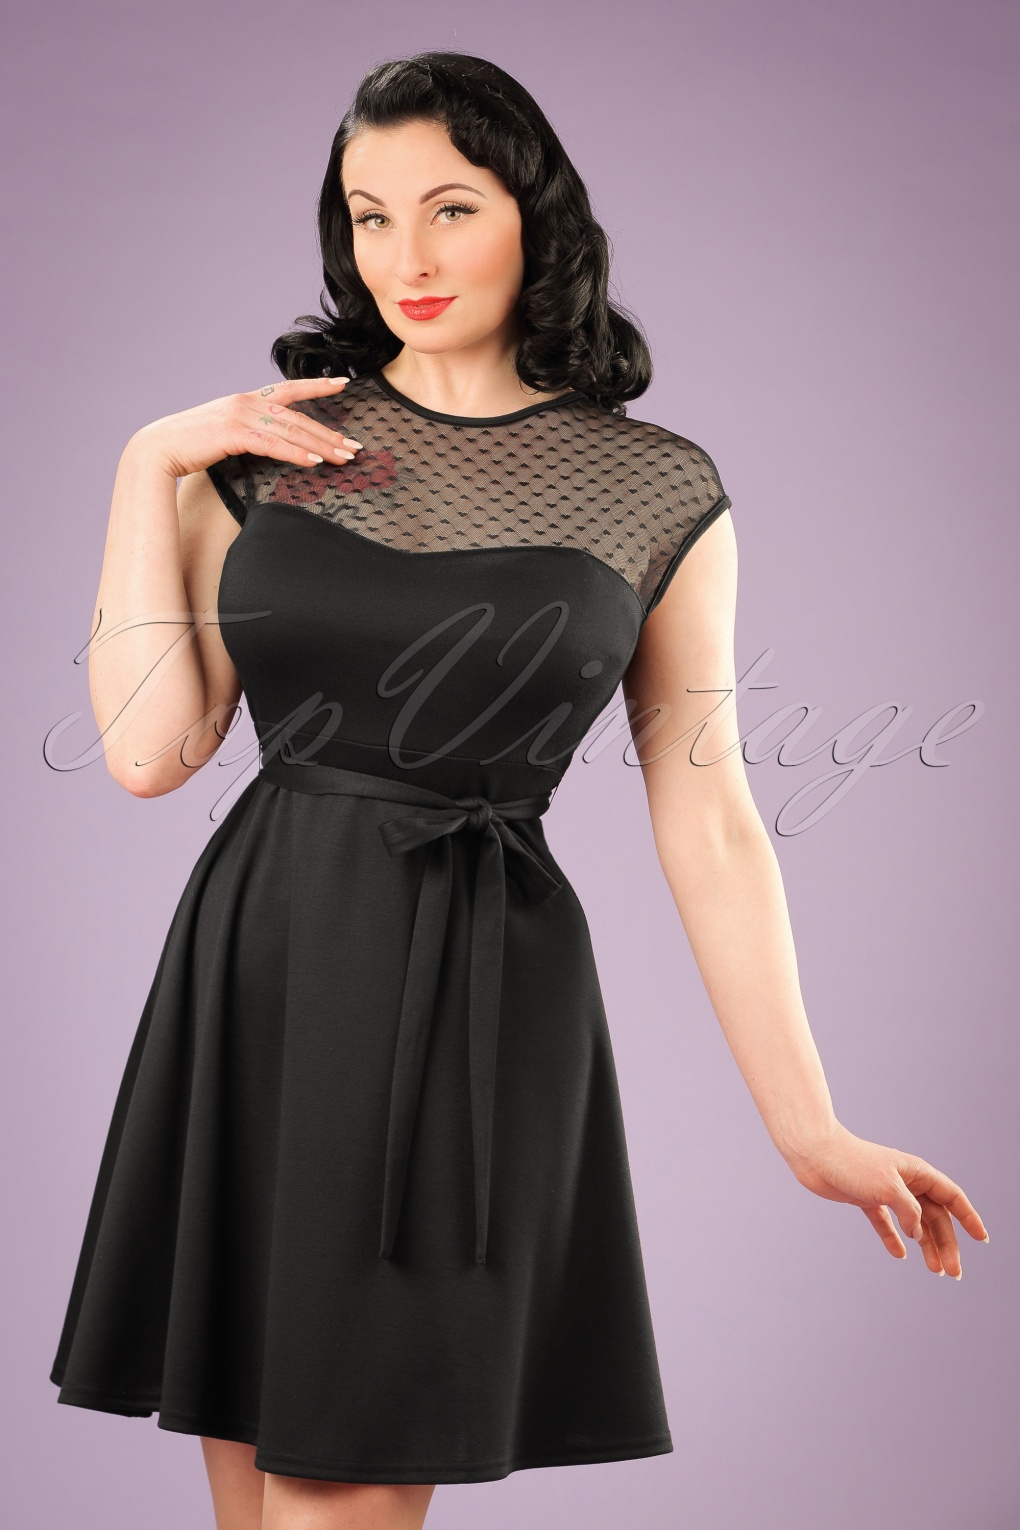 1960s Style Dresses- Retro Inspired Fashion Madeline Hearts Only Swing Dress in Black £68.20 AT vintagedancer.com